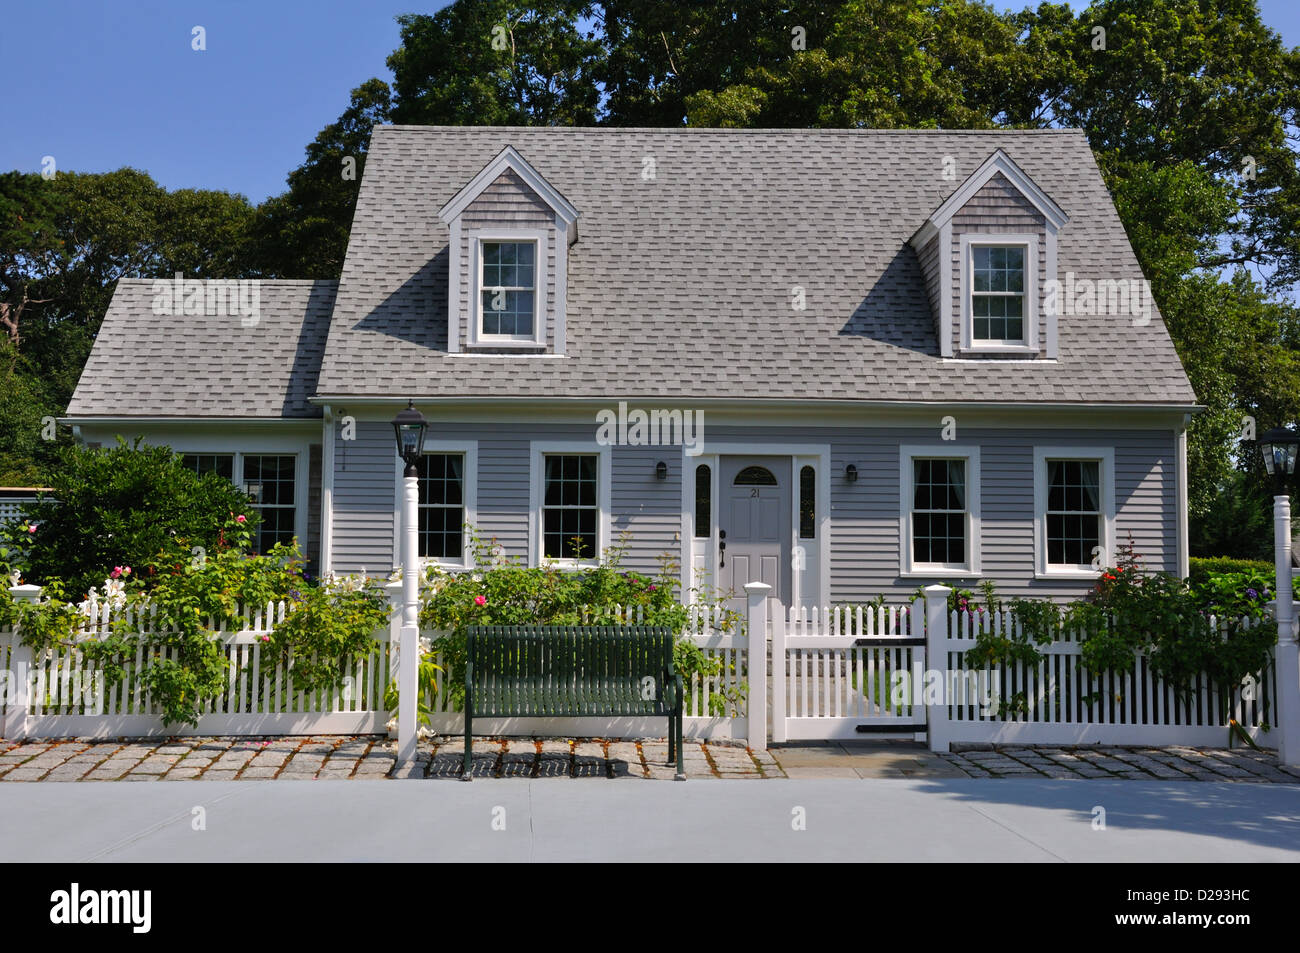 cape cod style house stock photos cape cod style house stock